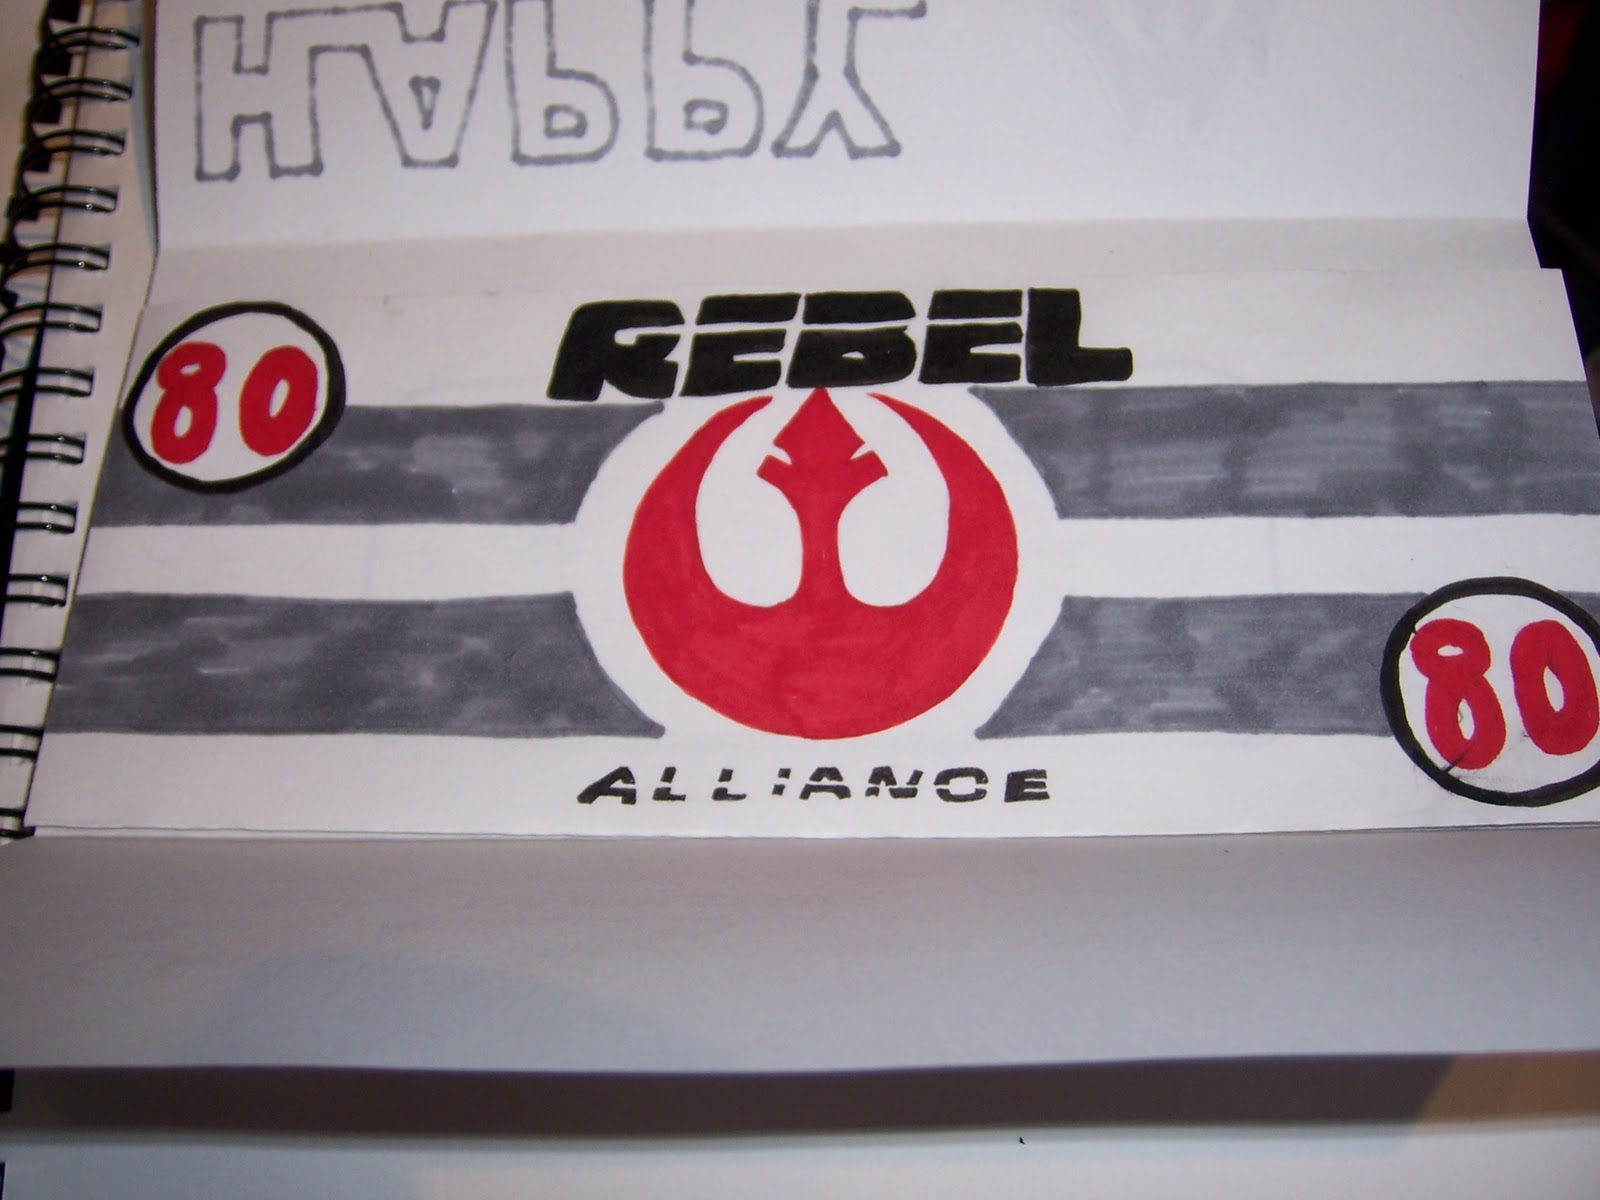 outside of a dog homemade star wars birthday card and gift 80 credits issued by the rebel alliance